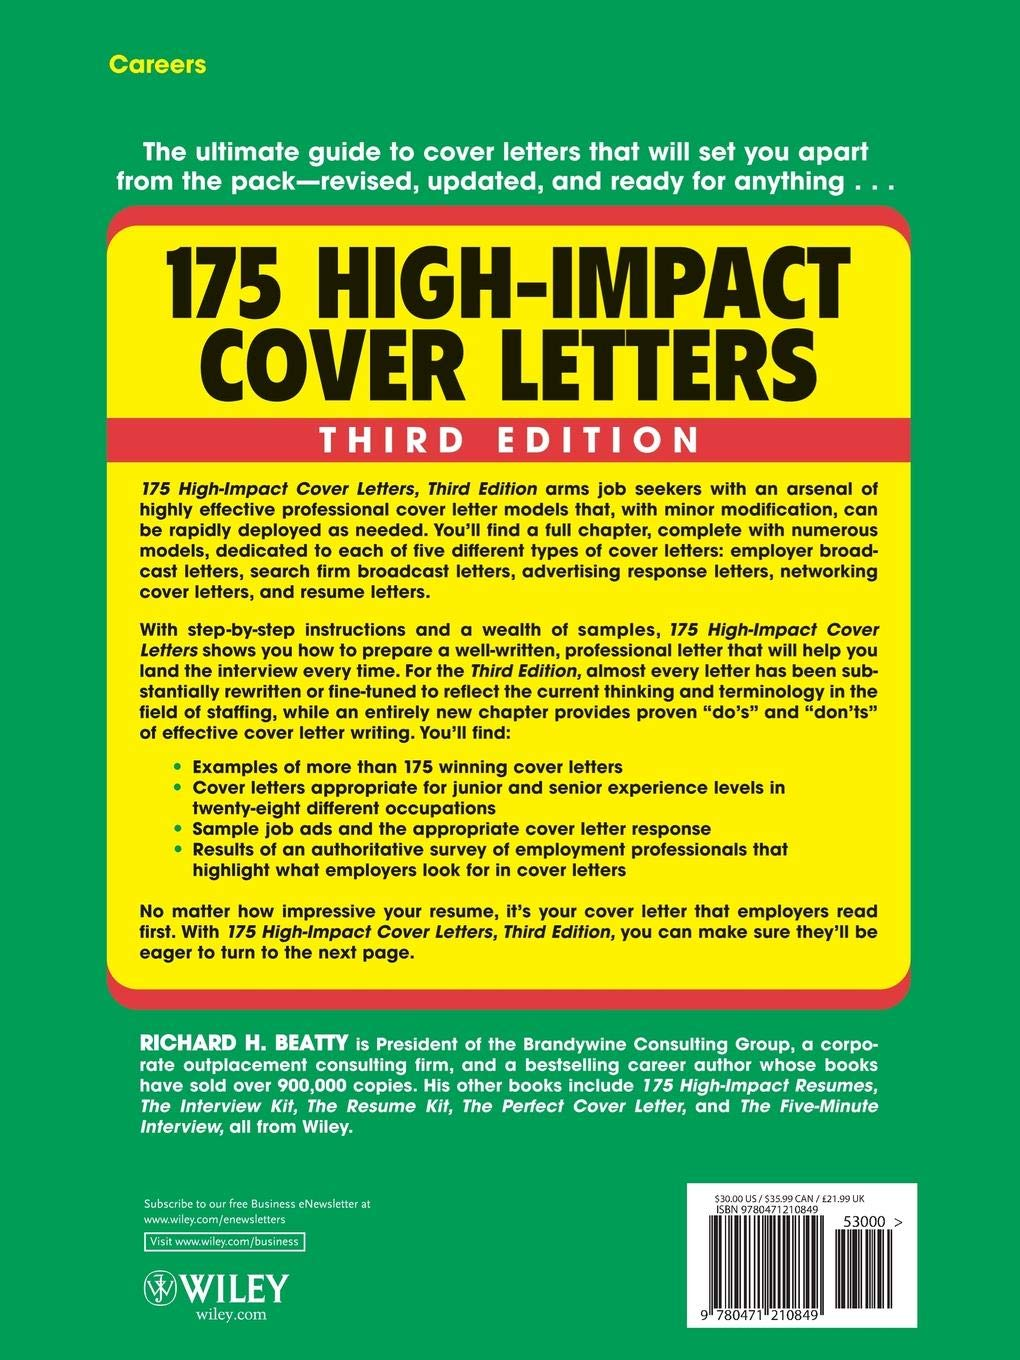 175 High-Impact Cover Letters: Richard H. Beatty ...